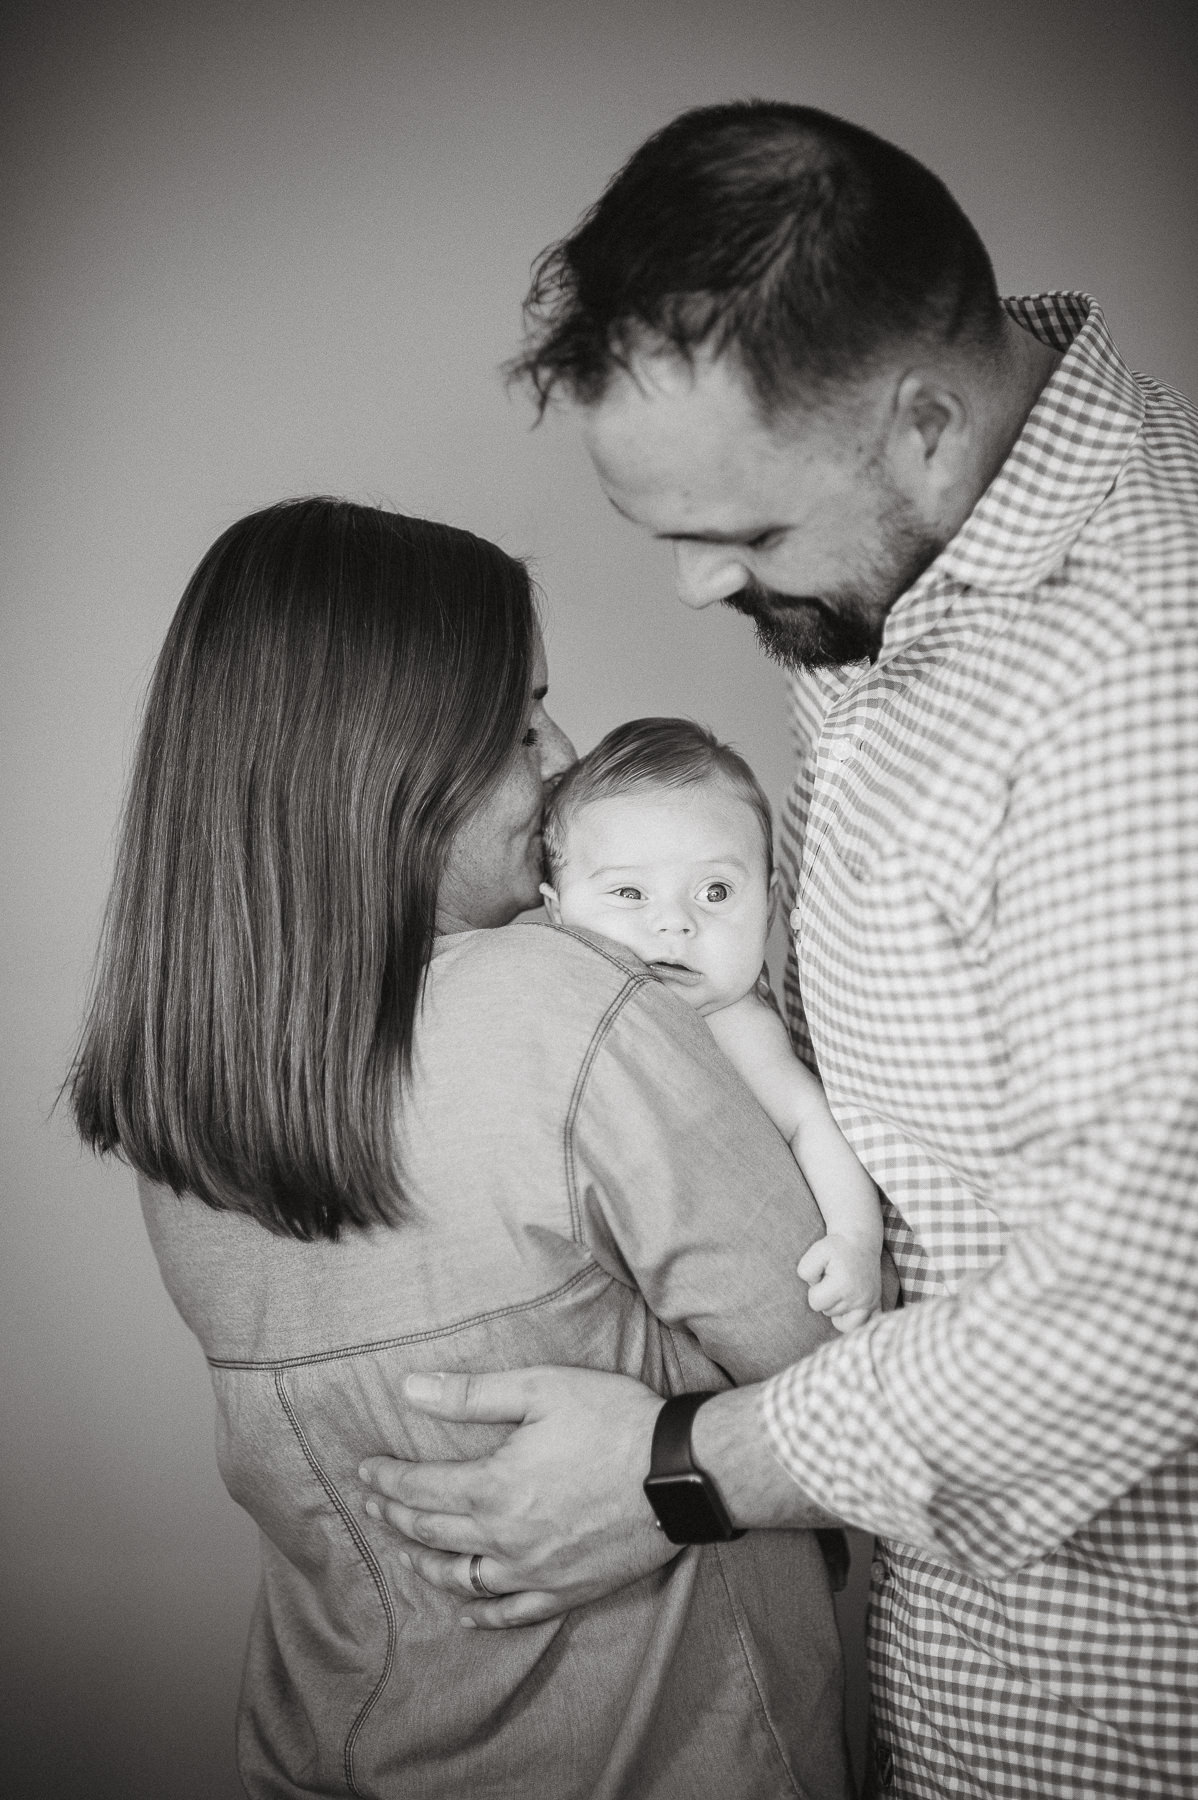 breighton-and-basette-photography-copyrighted-image-blog-croix-newborn-020.jpg